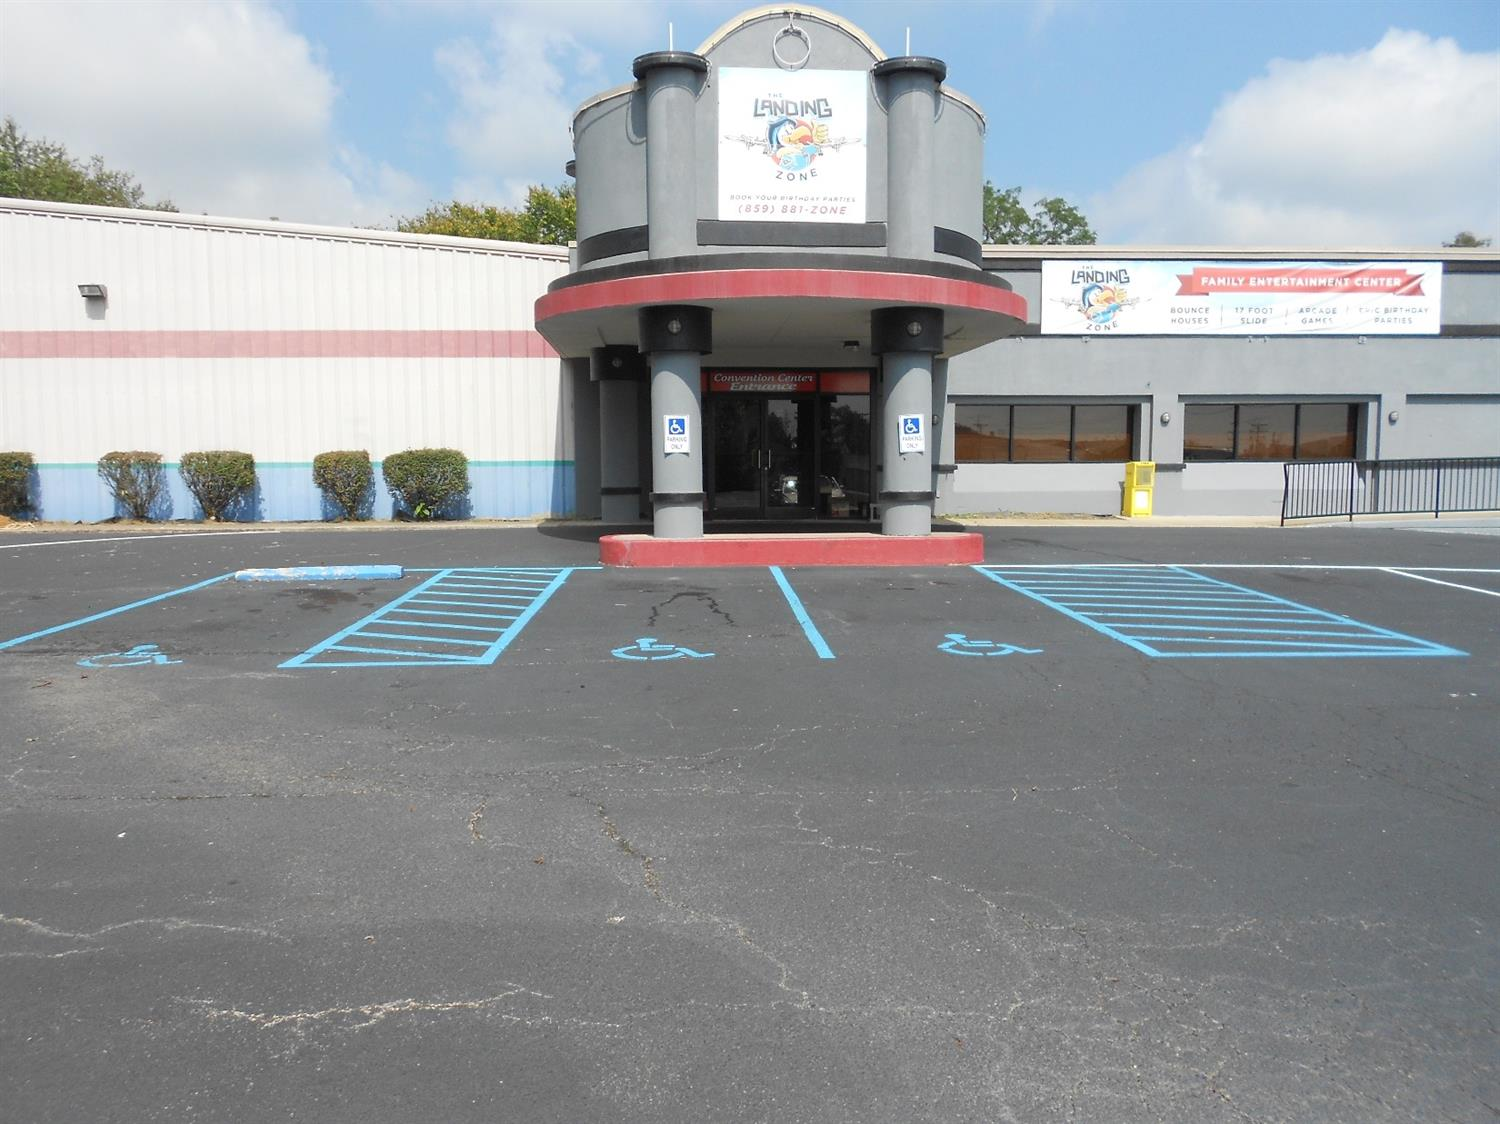 REDUCED!%20SALE%20or%20LEASE%20%20Formerly%20a%20restaurant%20/%20sports%20bar,%20and%20a%2016%20lane%20bowling%20center.%20The%20restaurant%20equipment,%20tables,%20chairs,%20TV's,%20etc%20are%20still%20in%20place,%20and%20are%20included.%20%20Endless%20possibilities,%20tons%20of%20space,%20a%20large%20deck,%20%20%20%20plenty%20of%20parking,%20and%20a%20well%20established%20%20location.%20Perfect%20for%20a%20craft%20beer%20brewery%20/%20restaurant,%20night%20club,%20game%20room%20/%20arcade,%20church,%20office%20space,%20just%20to%20name%20a%20few.%20Will%20consider%20dividing%20the%20building,%20and%20leasing%20the%20restaurant%20and%20the%20larger%20space%20separately.Sale%20$649,000%20or%20lease%20$3000.00%20/%20Month%20NNN.